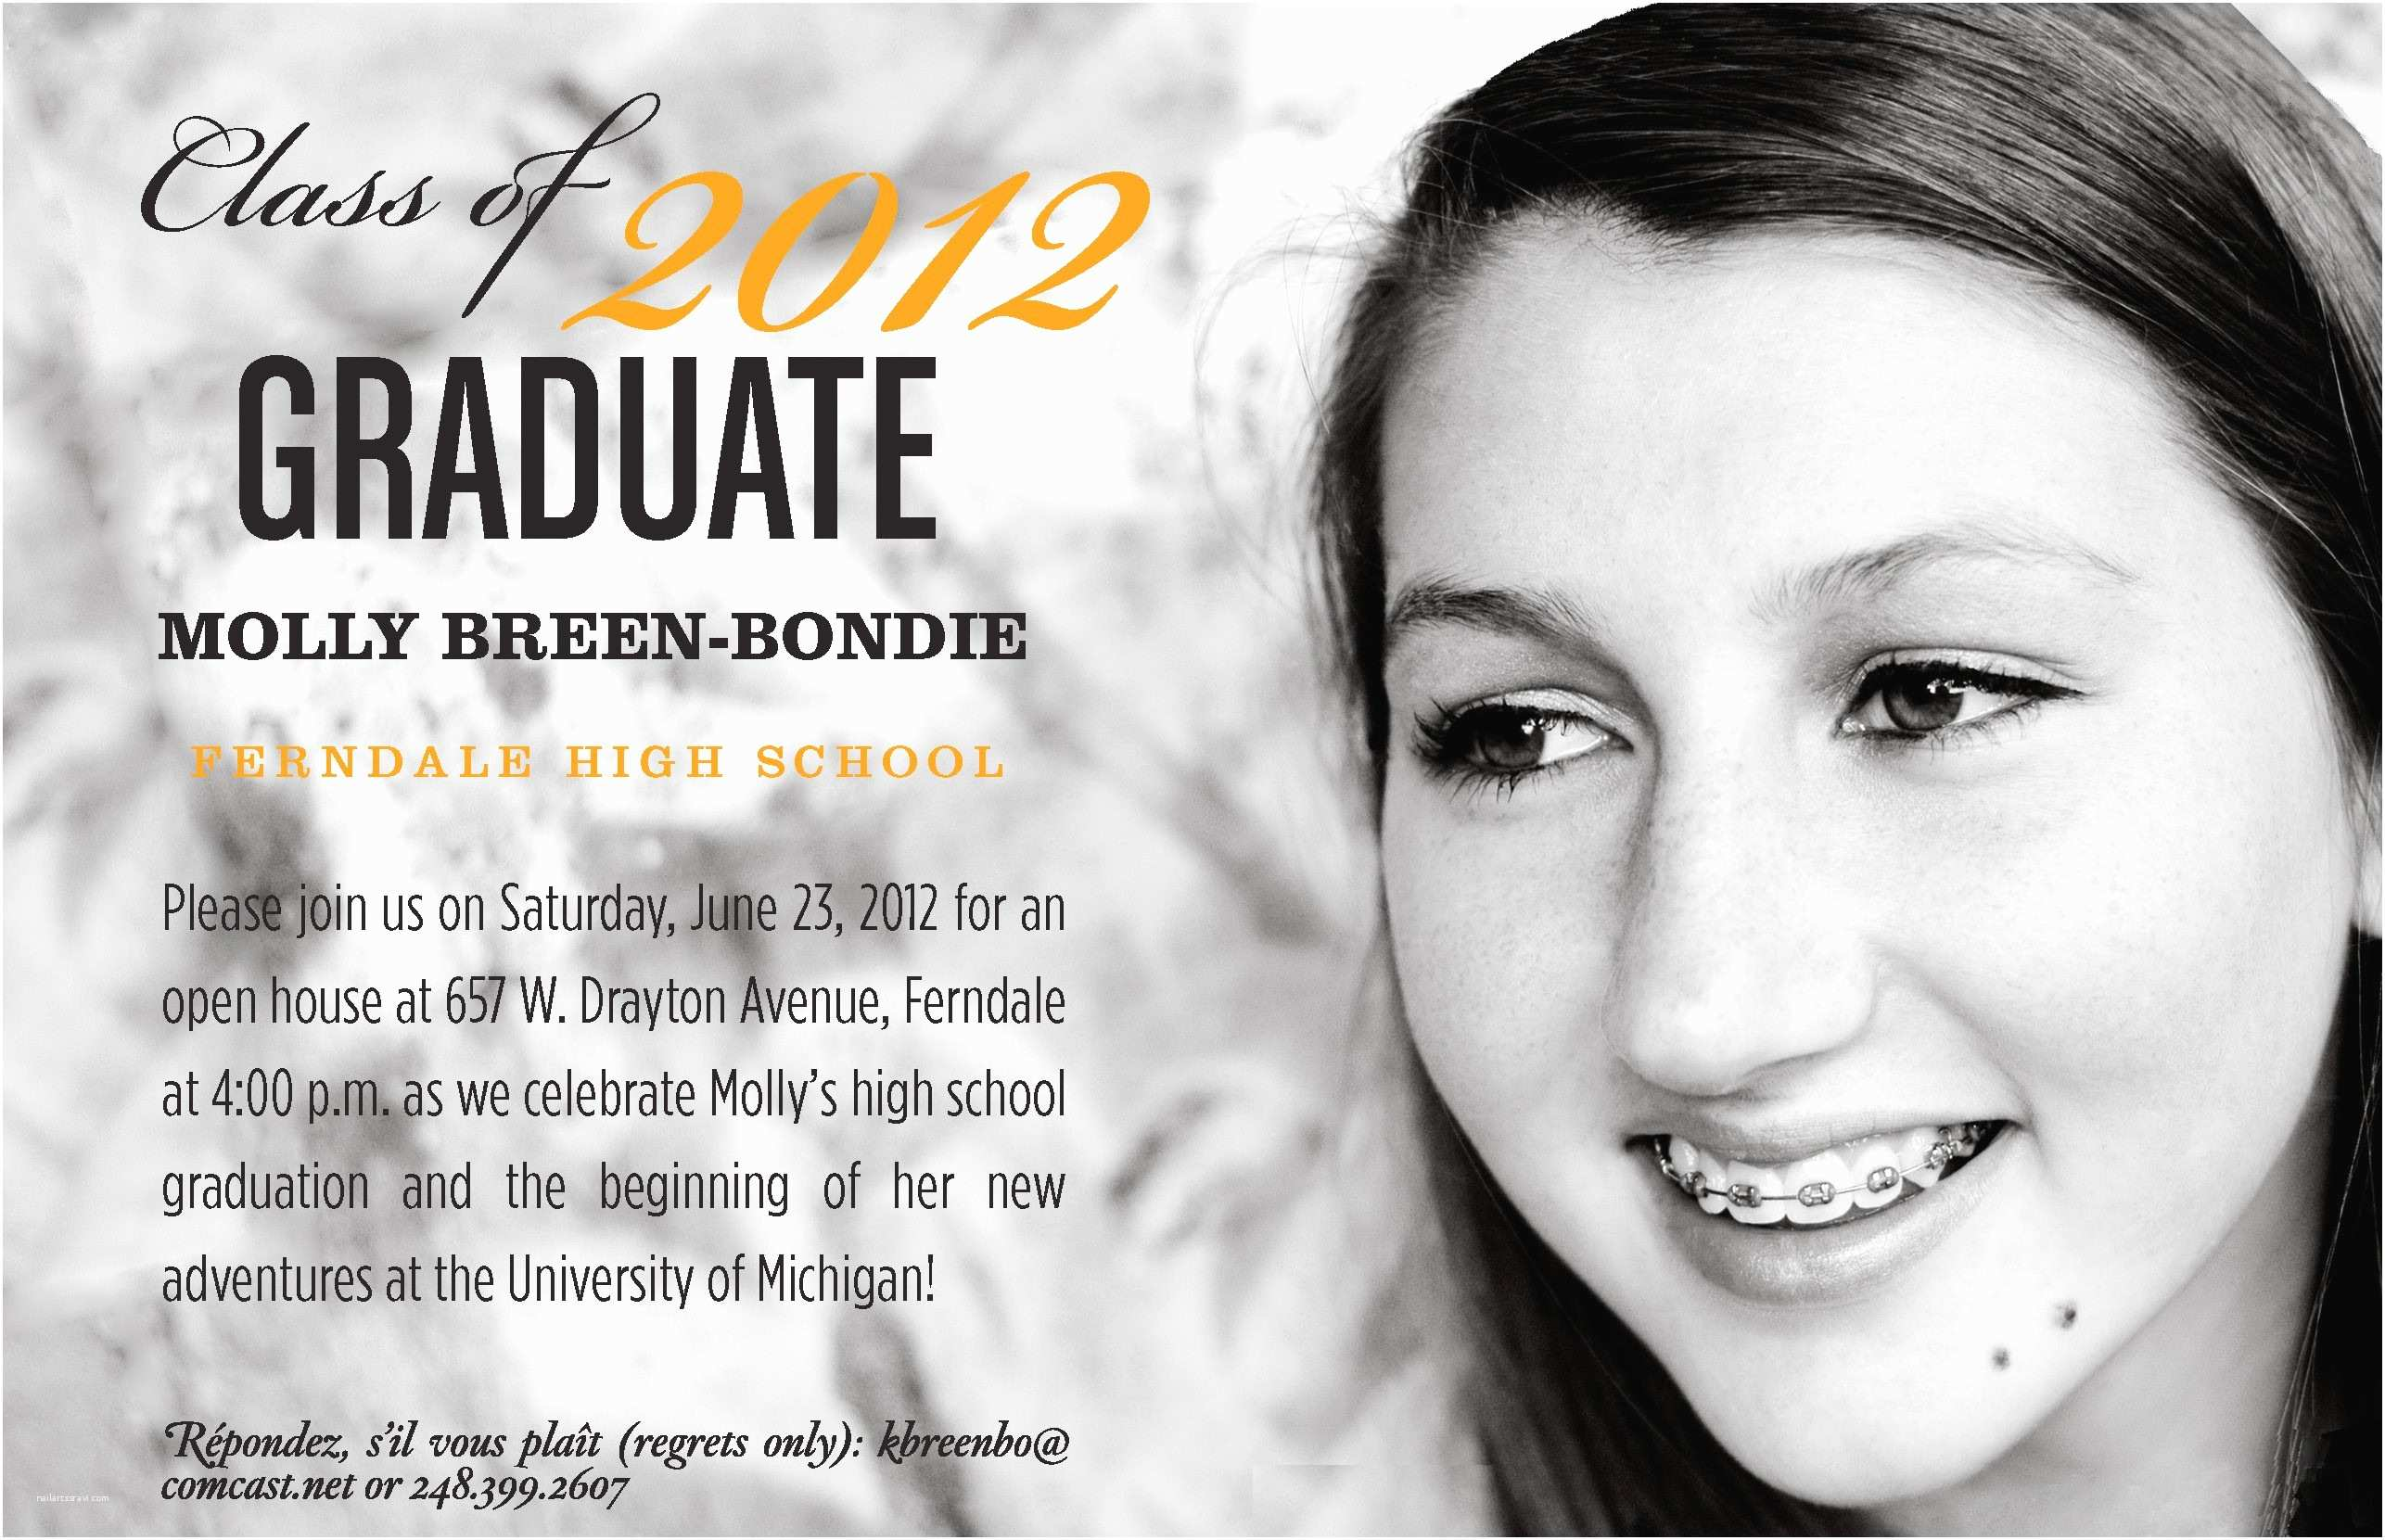 College Graduation Invitation Wording High School Graduation Invitation Wording